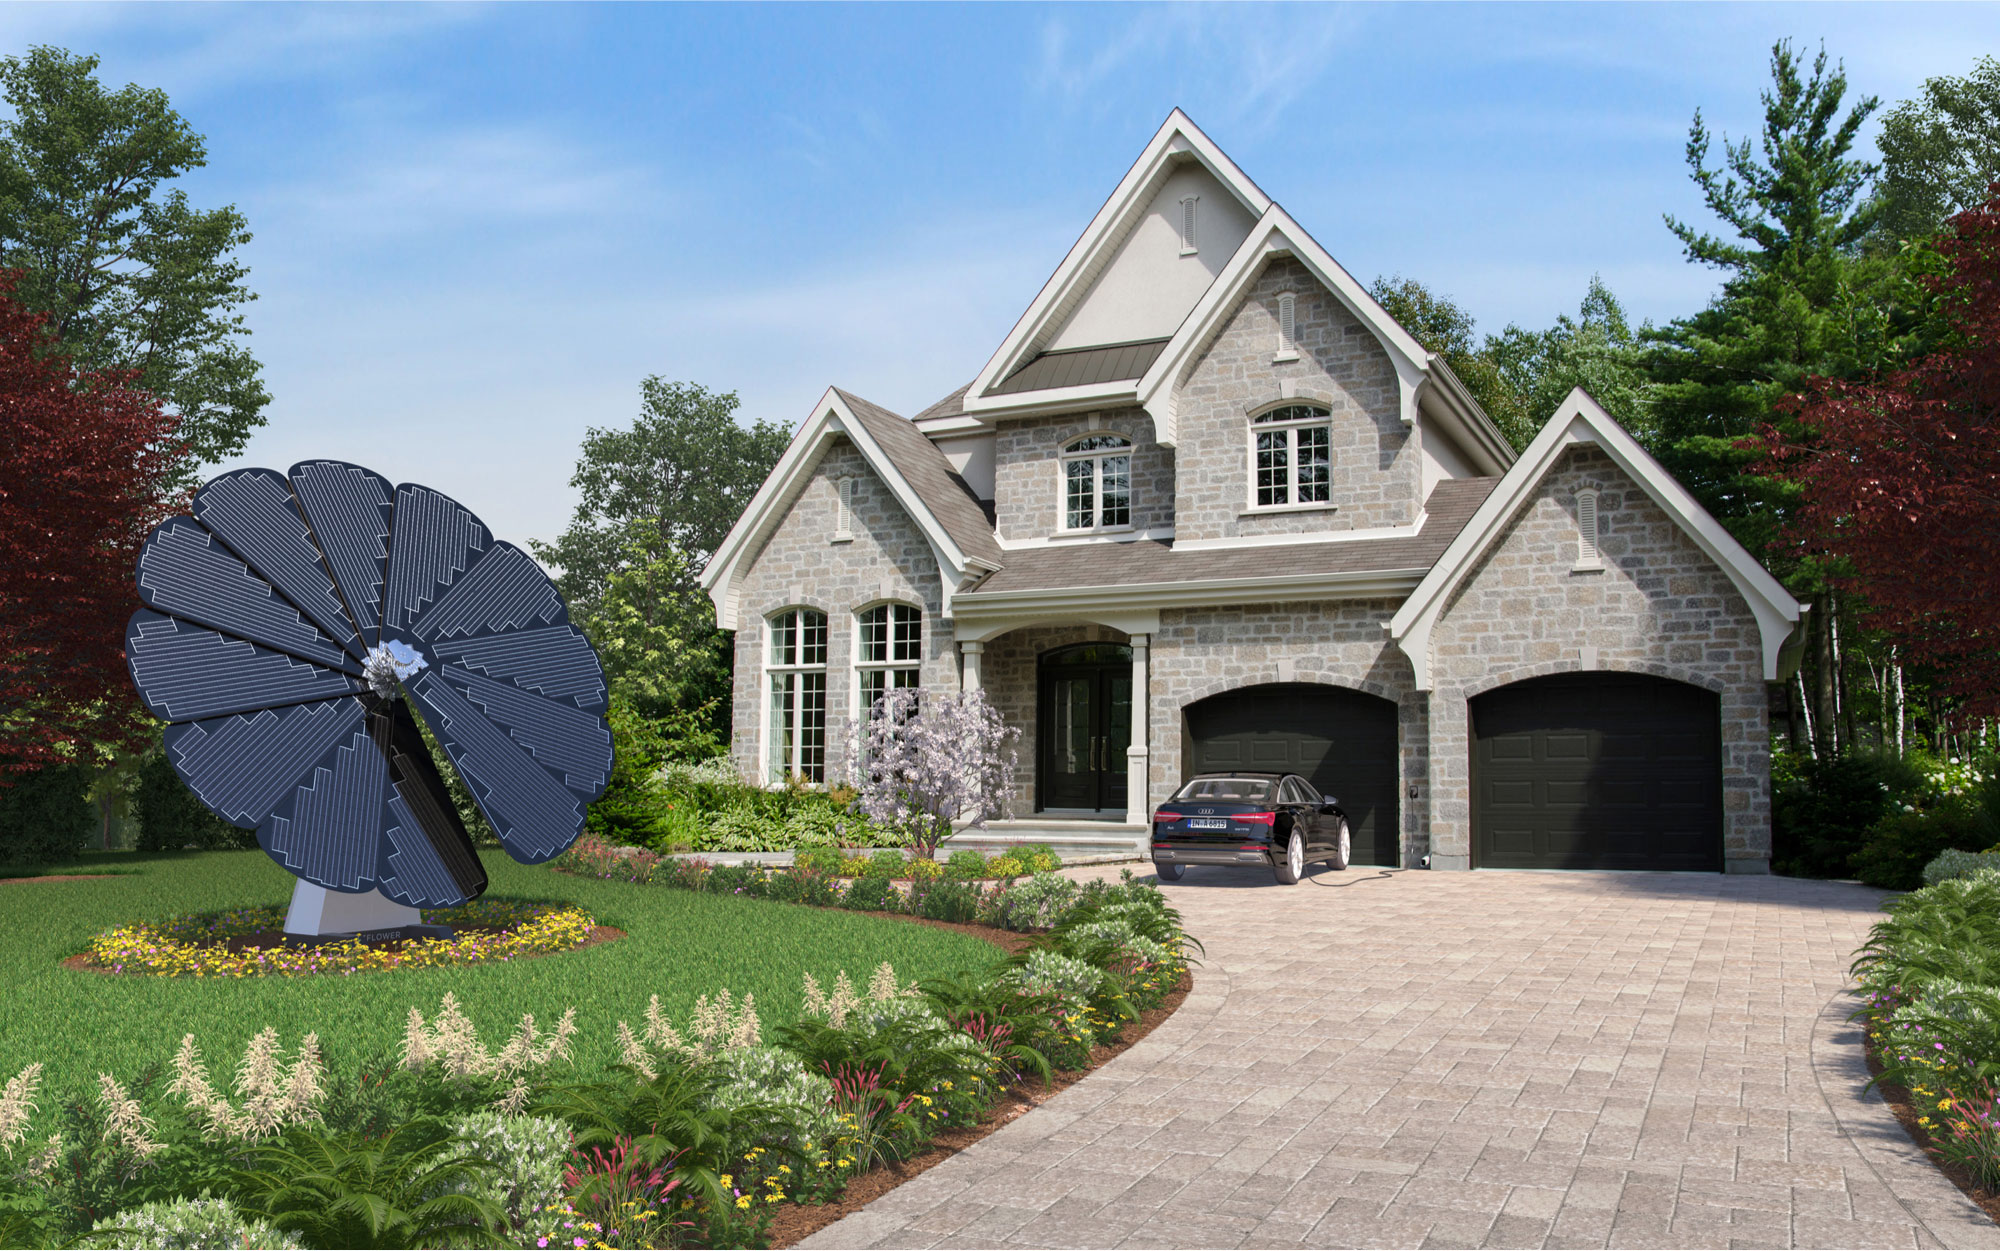 3D Rendering of a SmartFlower Solar Panel in the Front Yard of a Grey Brick Two-Story Home